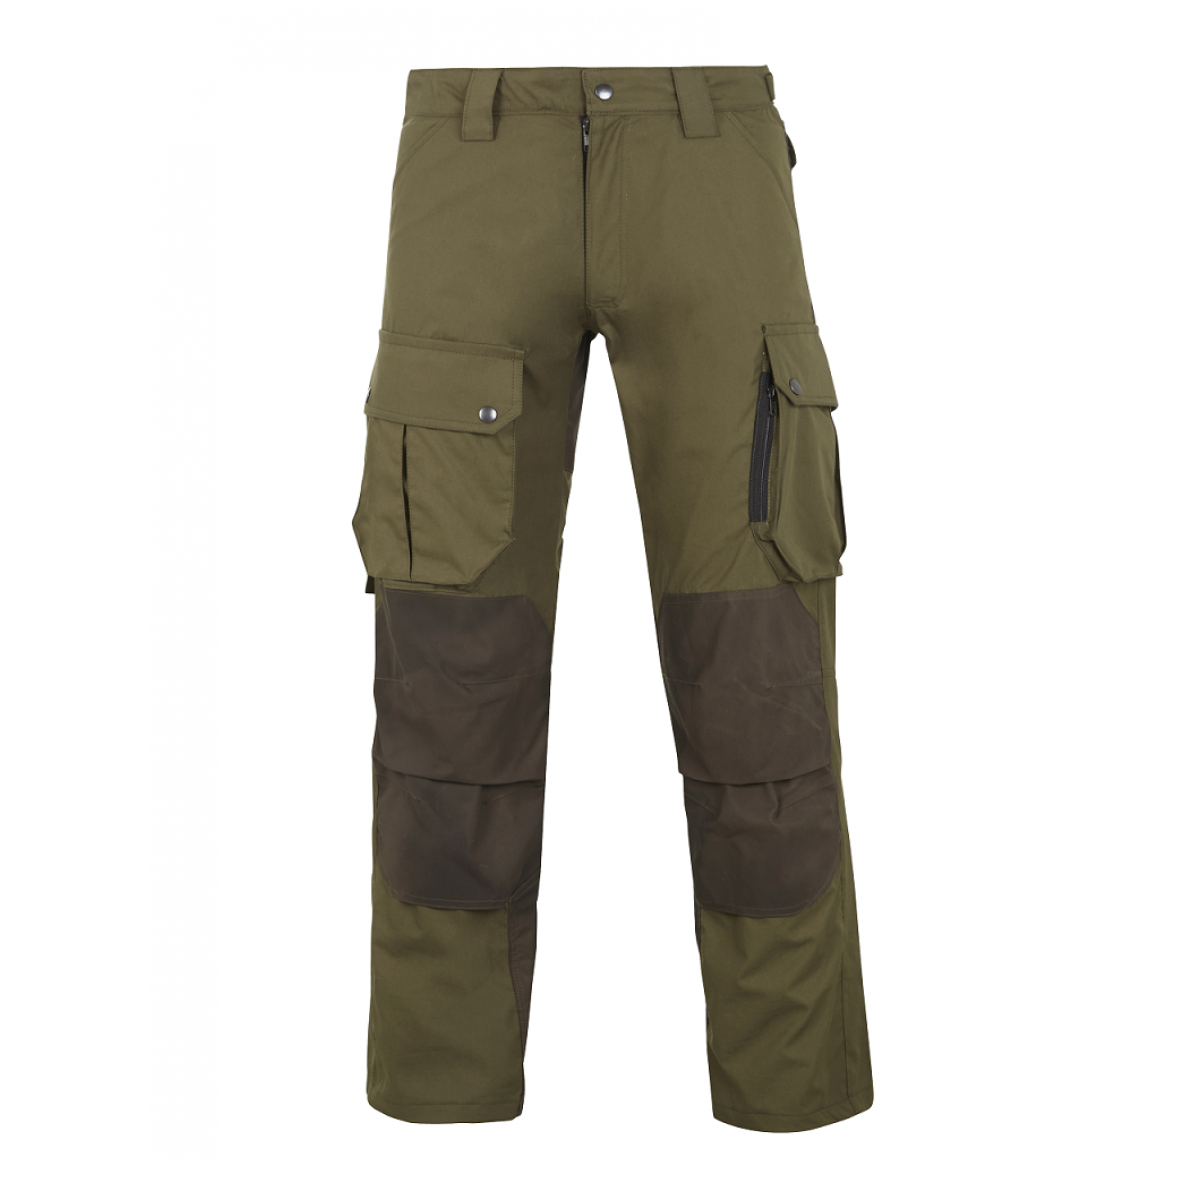 Heritage Trousers - Trousers PNG HD